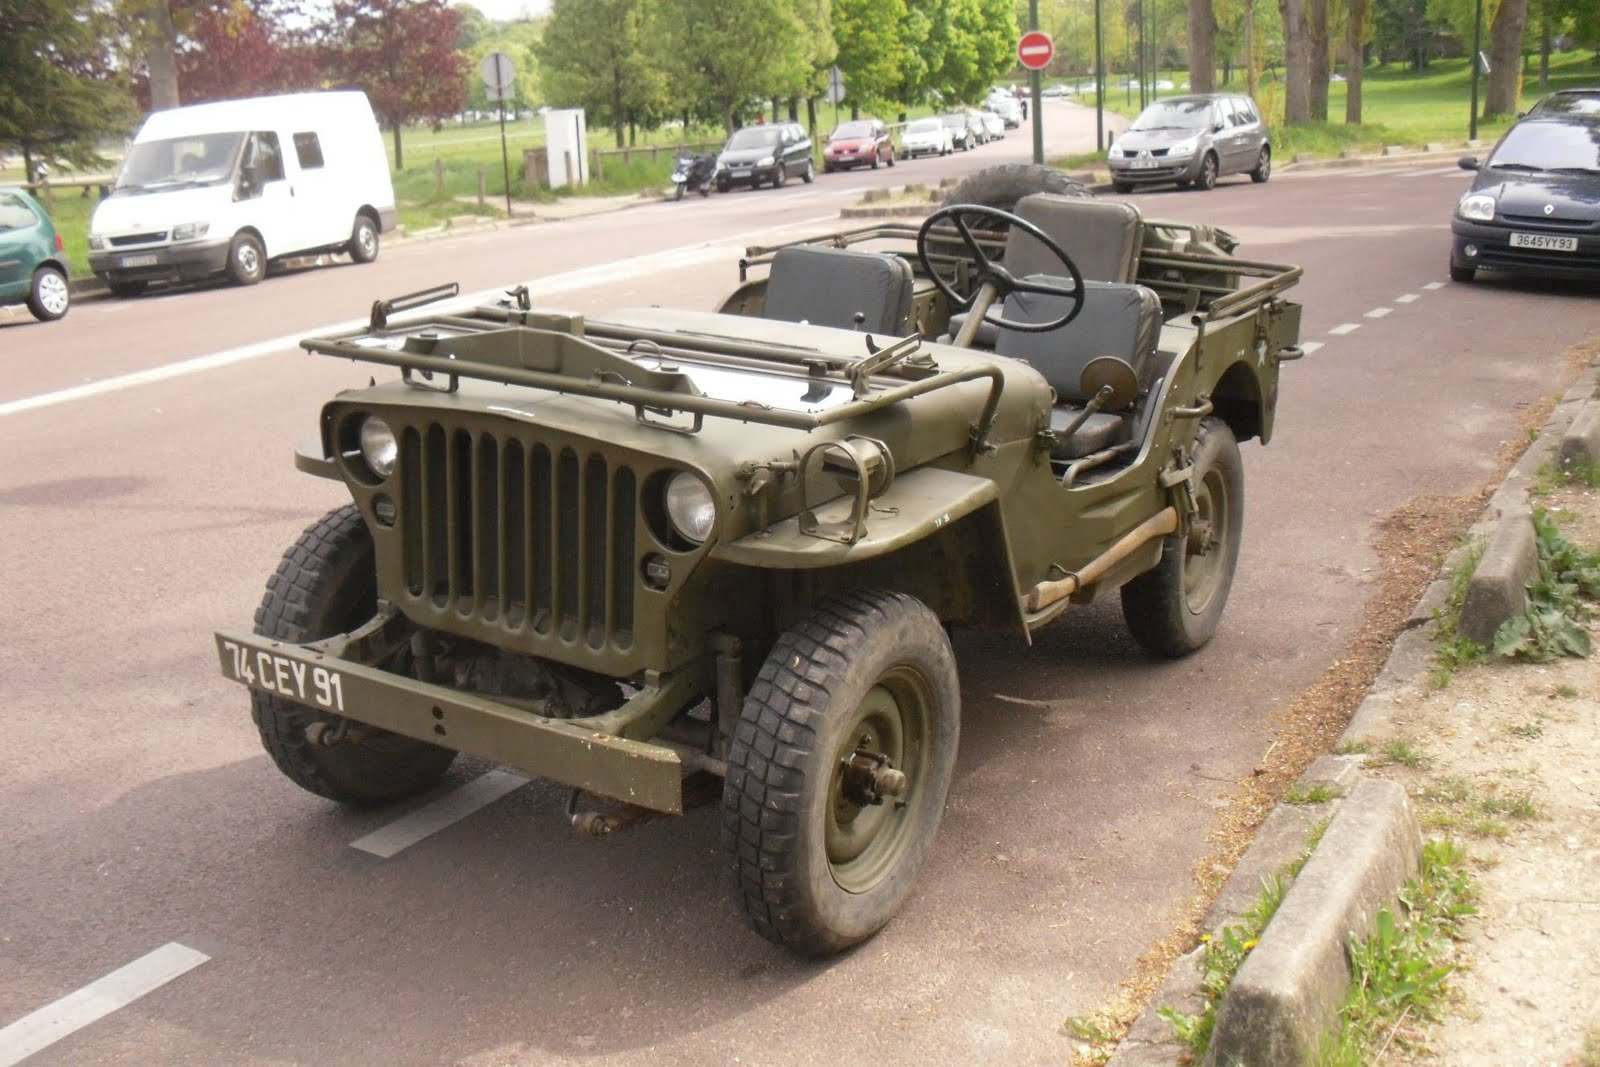 Hotchkiss M201 Jeep For Sale >> WW2 Jeep windshield - G503 Military Vehicle Message Forums